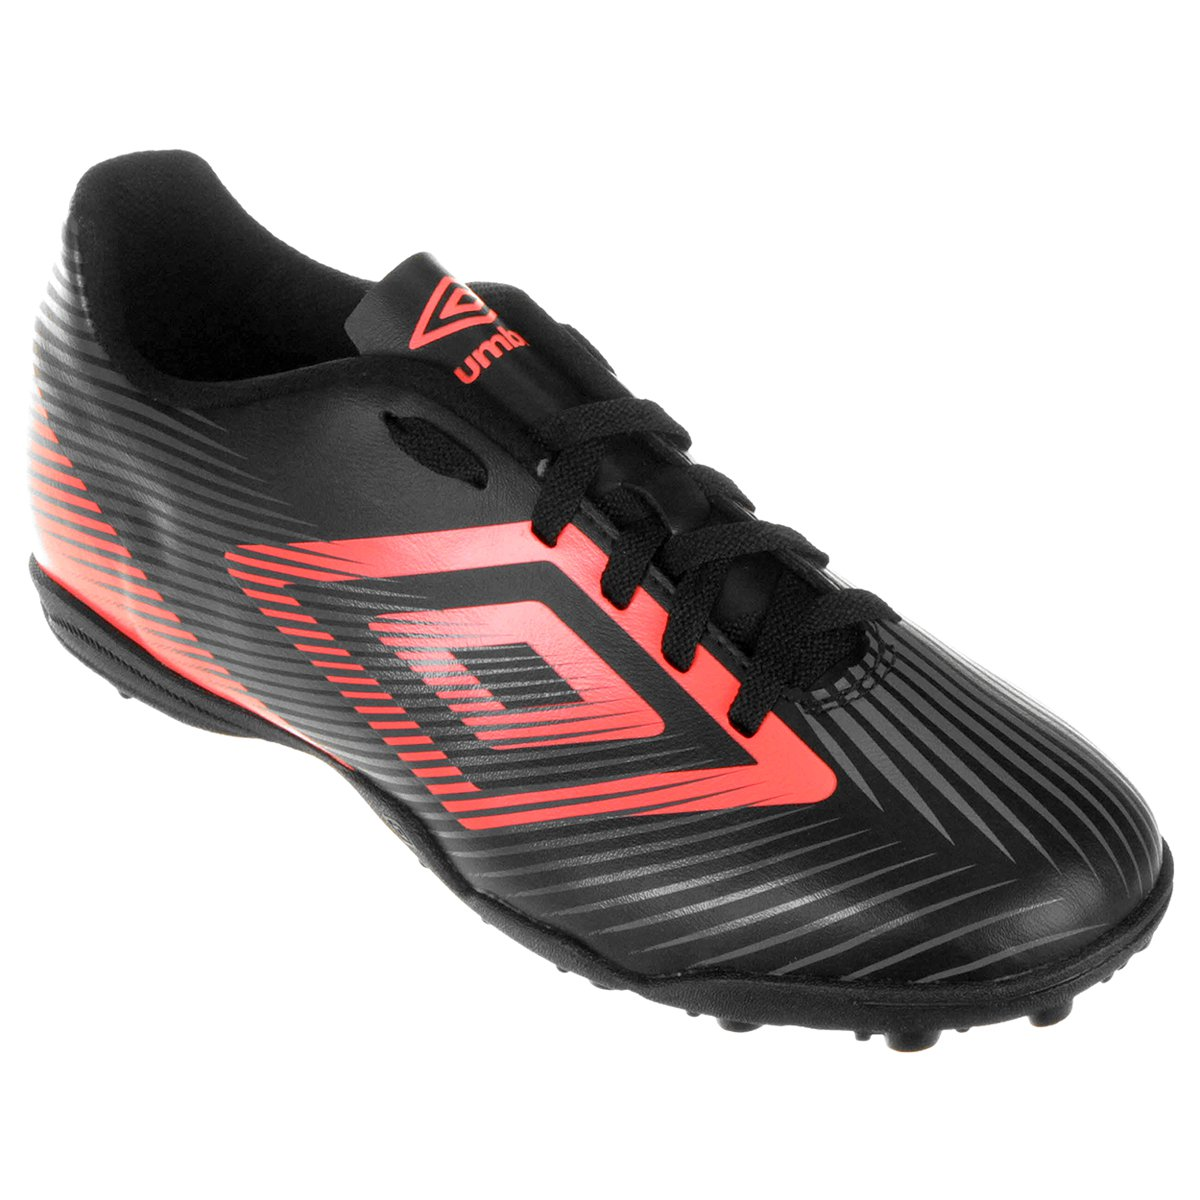 070cc99204826 Chuteira Society Umbro Speed 2 Masculina | Shop Vasco